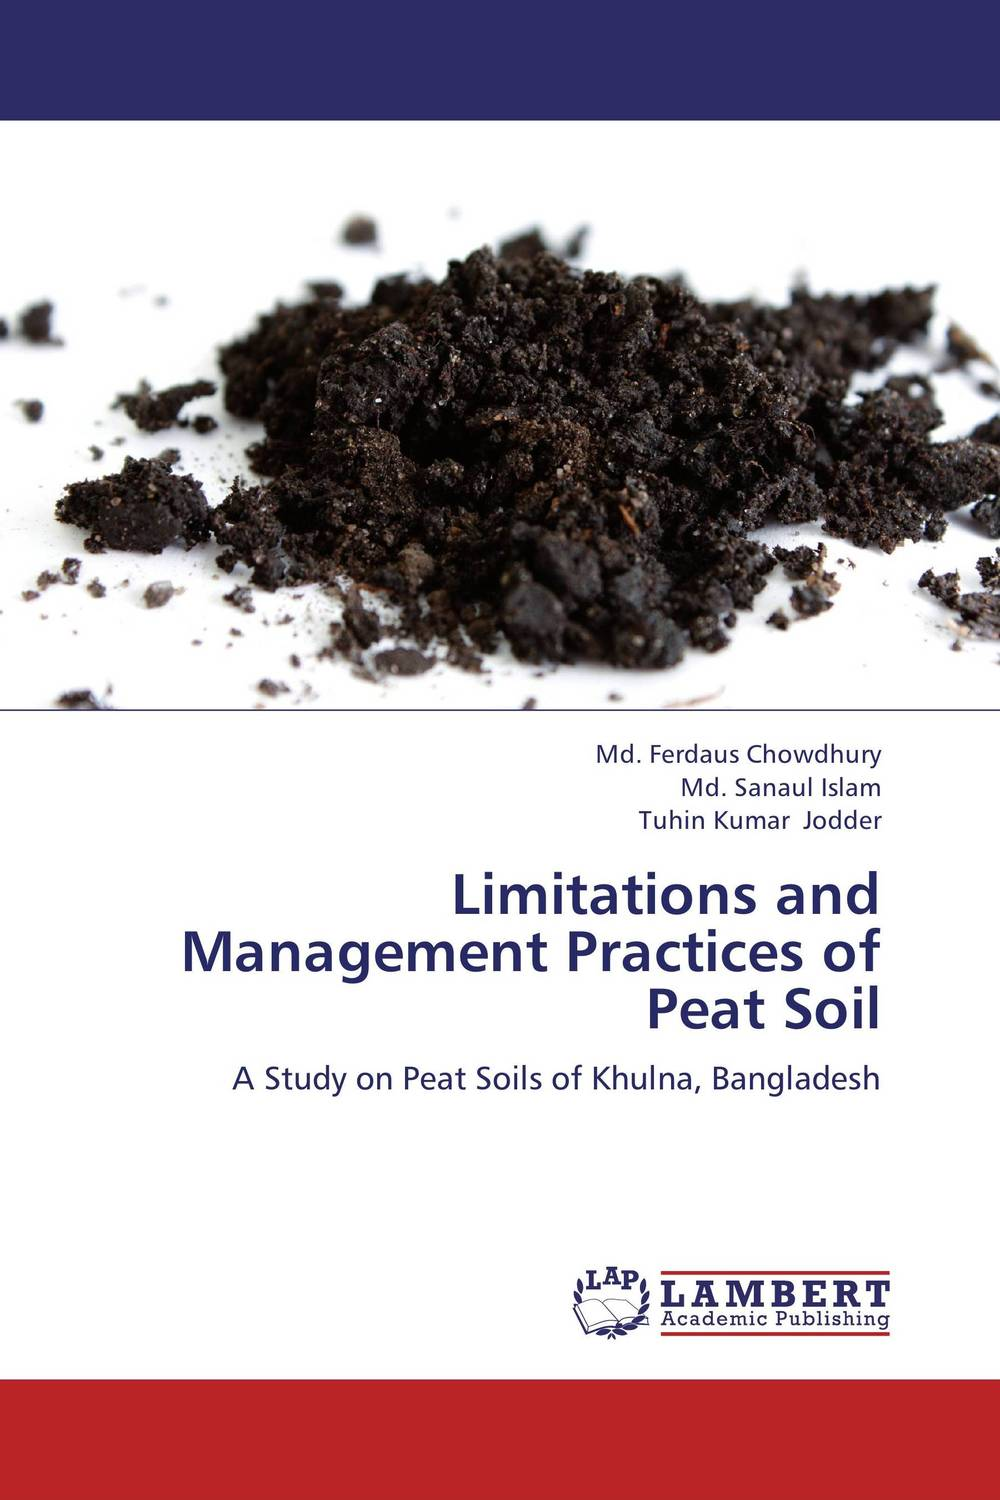 Limitations and Management Practices of Peat Soil biomarkers of brain injury in children potential uses and limitations